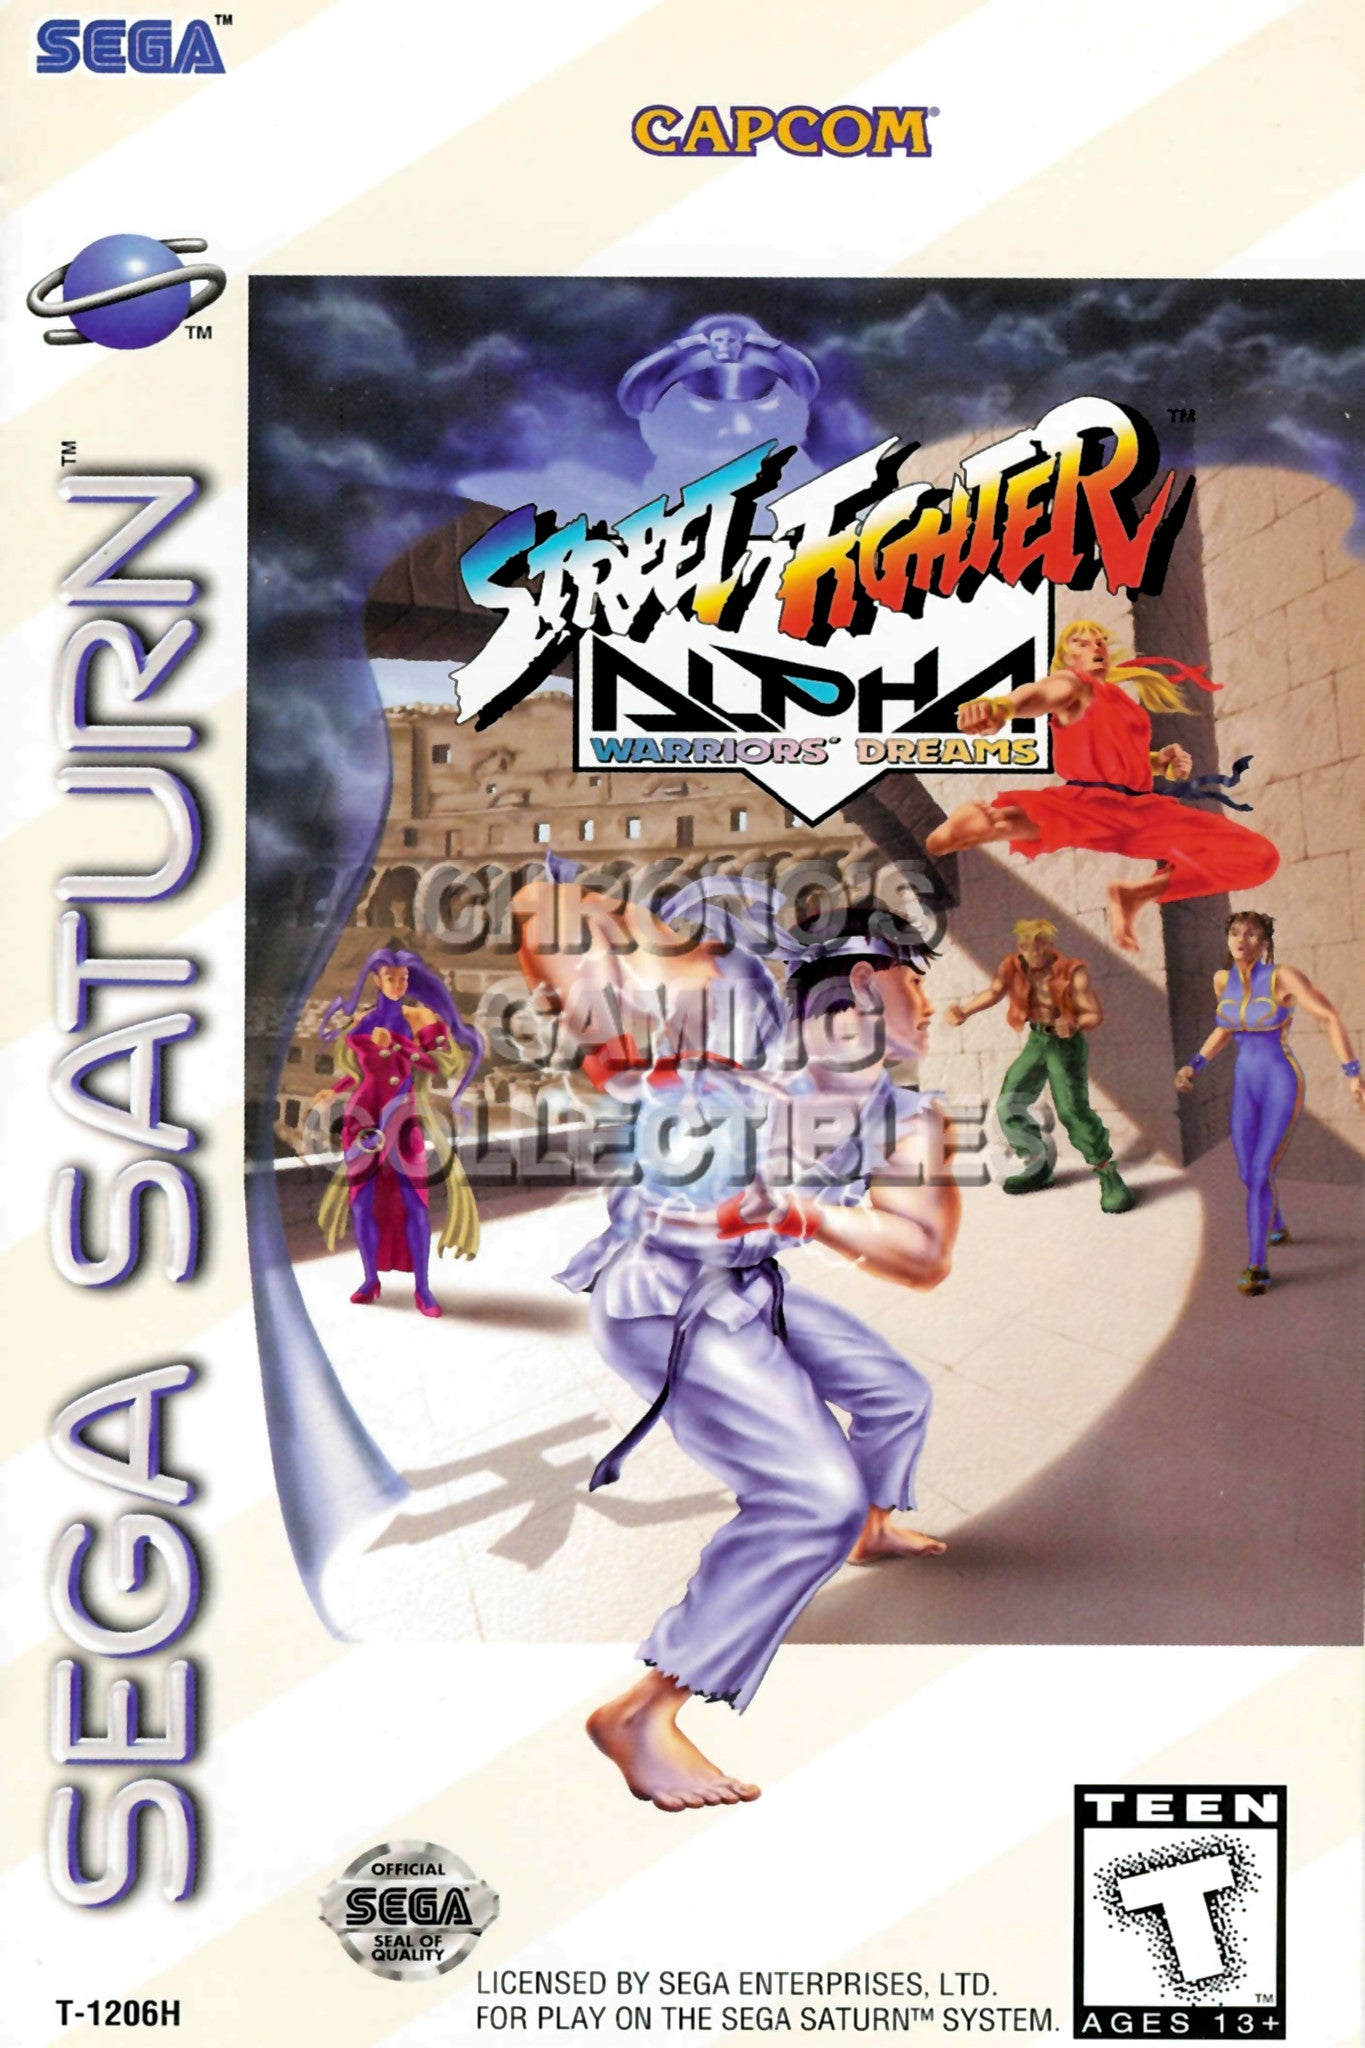 Sega Saturn Video Games Poster Cgcposters